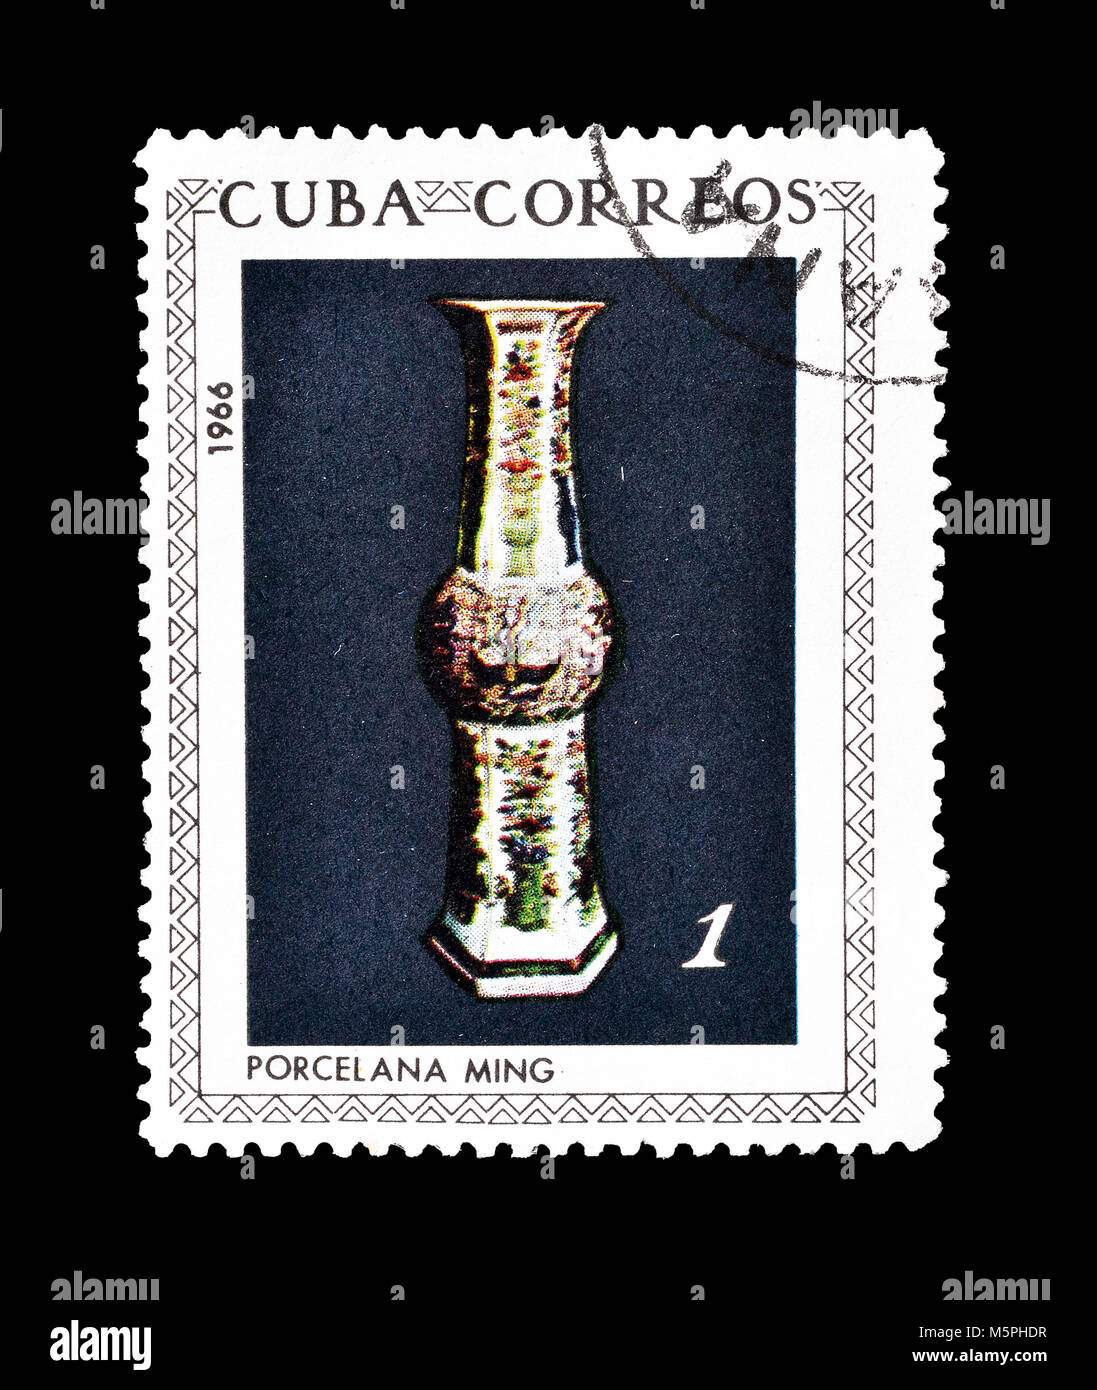 Ming vase stock photos ming vase stock images alamy cancelled postage stamp printed by cuba that shows ming porcelain vase circa 1966 reviewsmspy